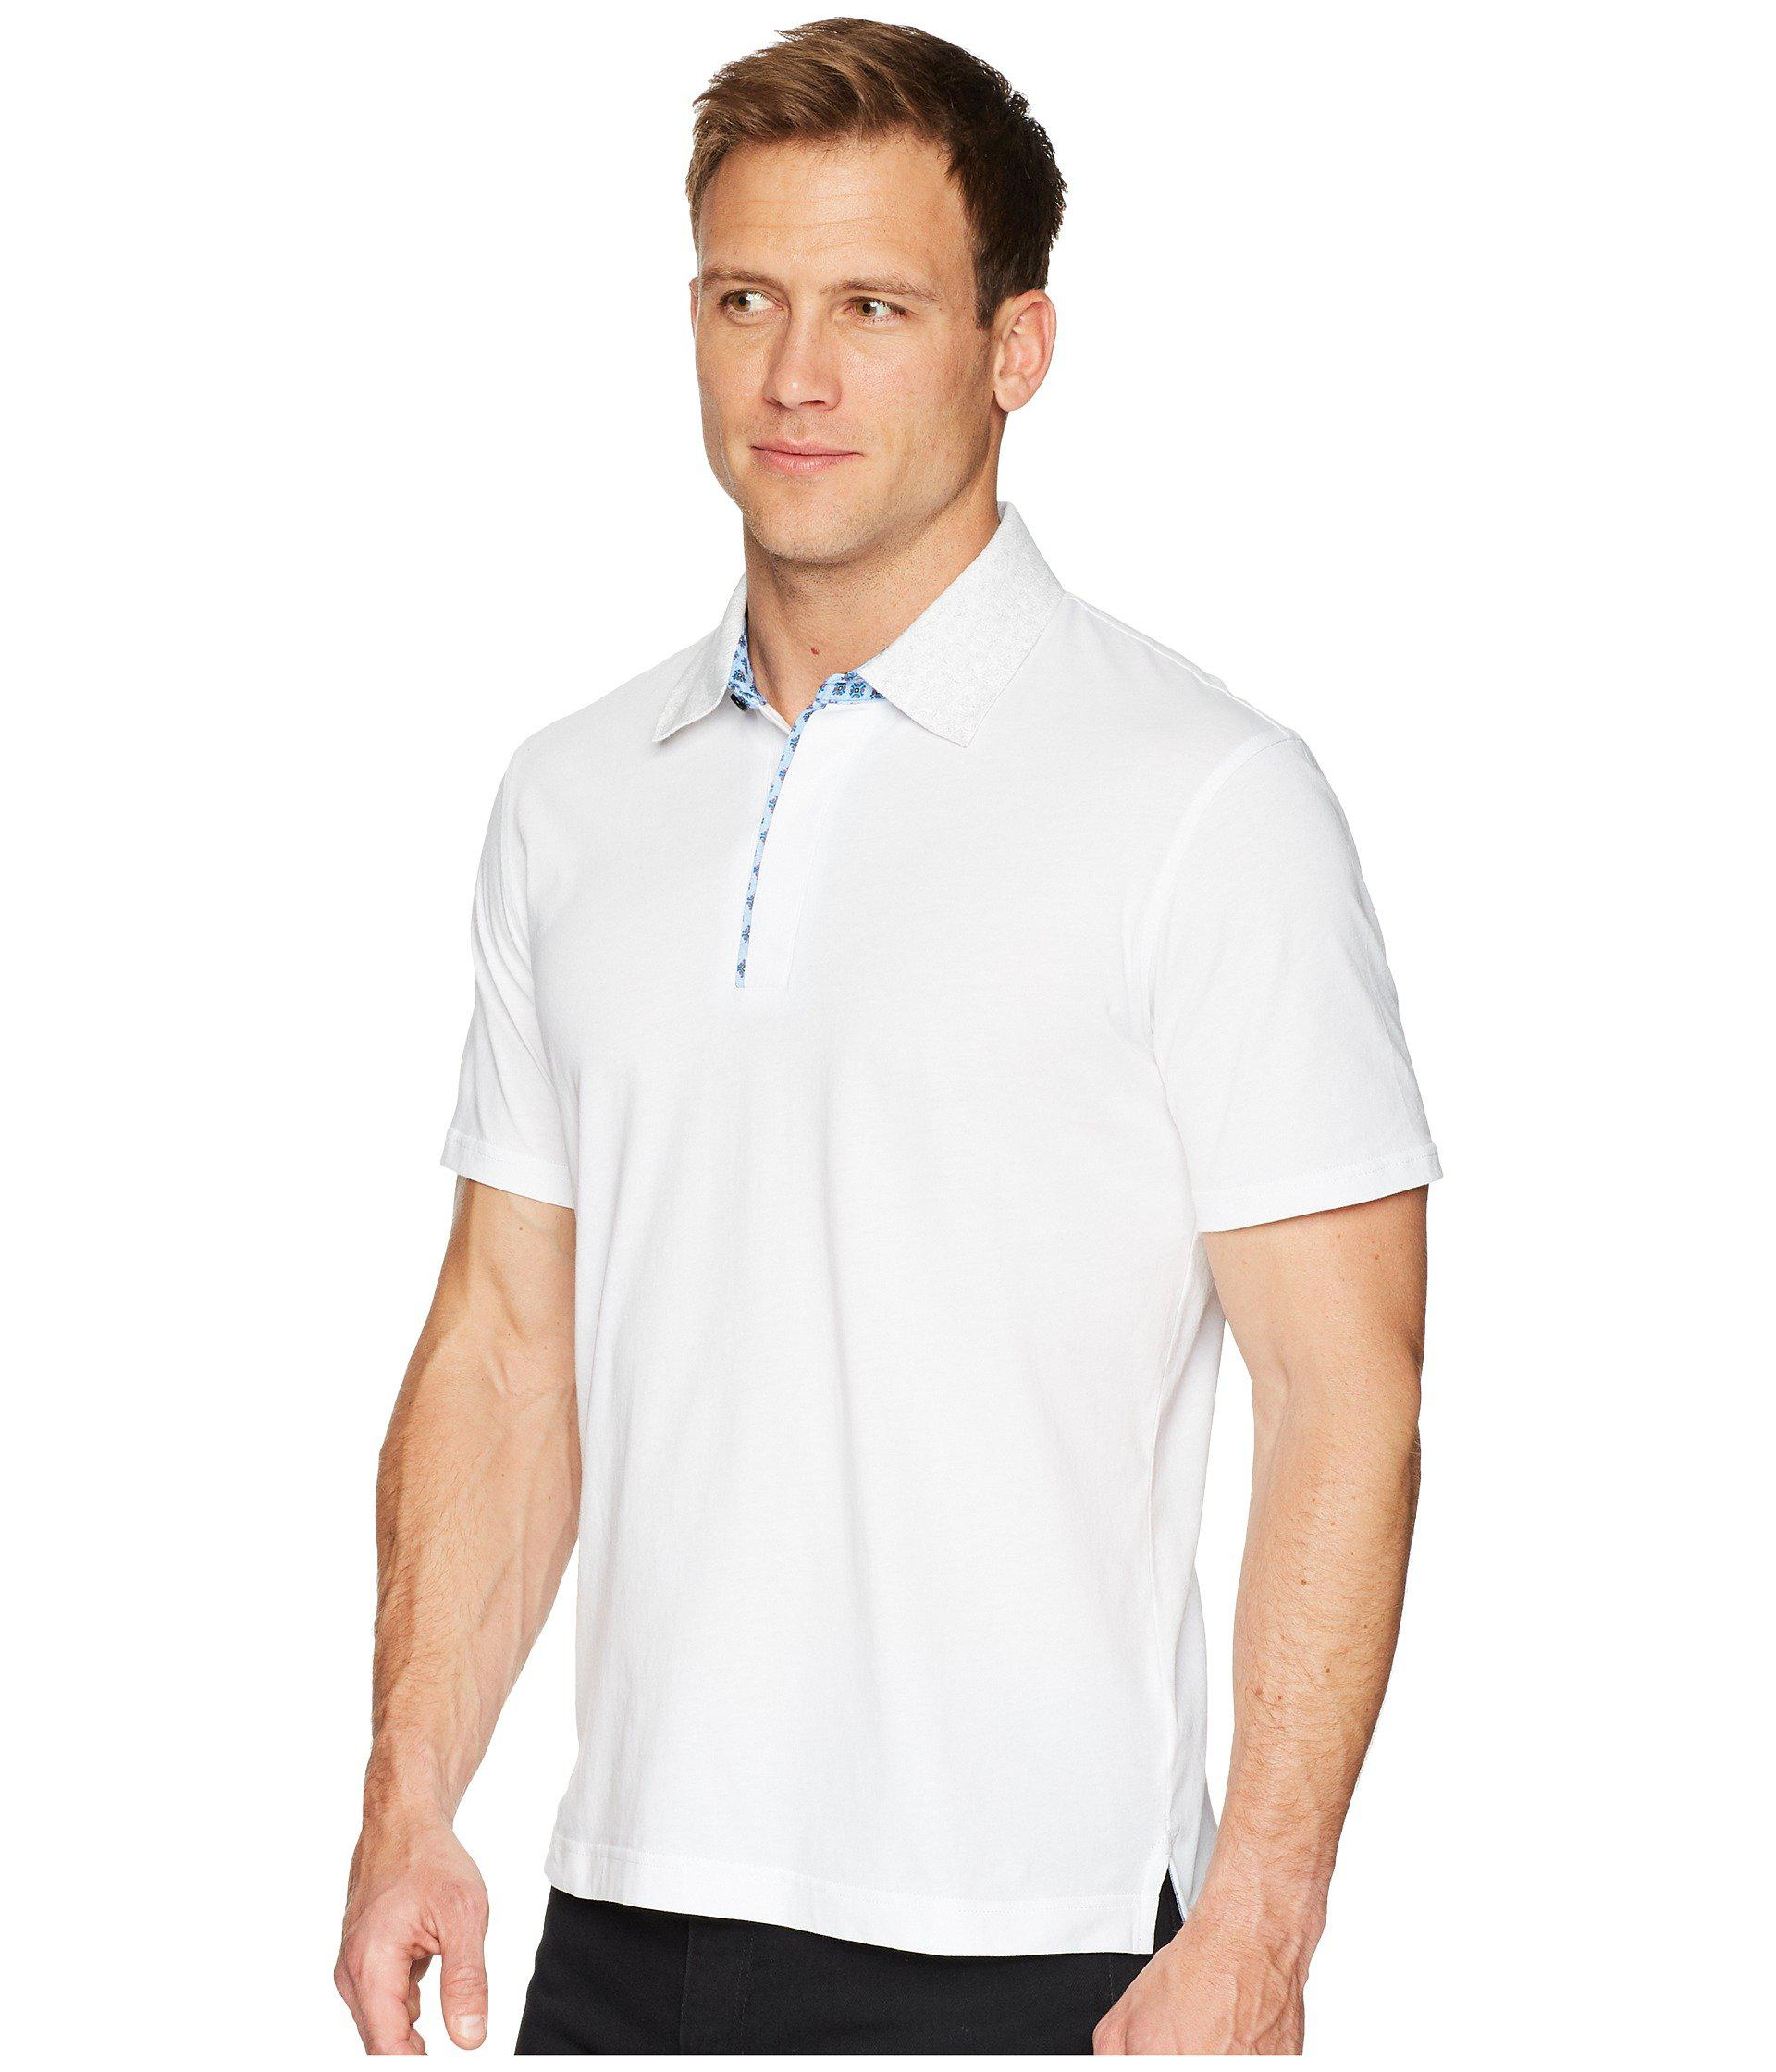 a26a74c1 Lyst - Robert Graham Diego Short Sleeve Knit Polo in White for Men - Save  44%